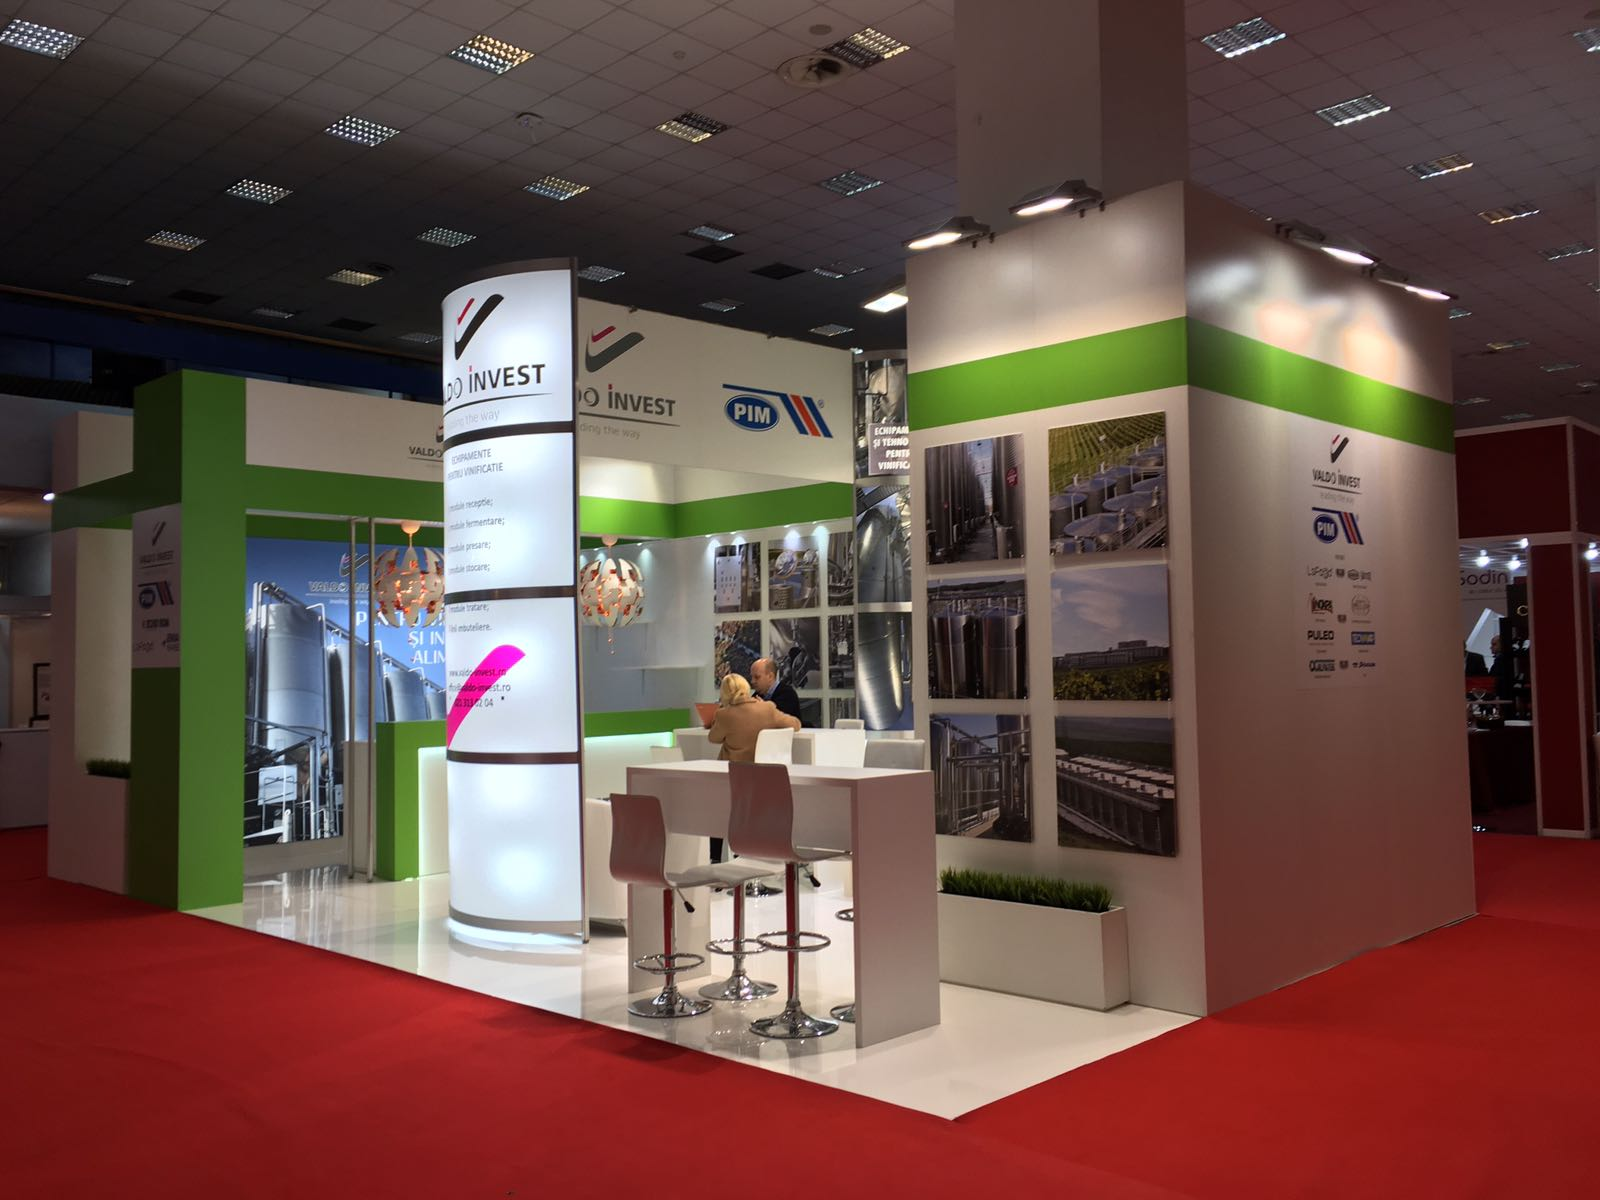 Exhibition Stand Wallpaper : How to create the perfect exhibition stand design for your business